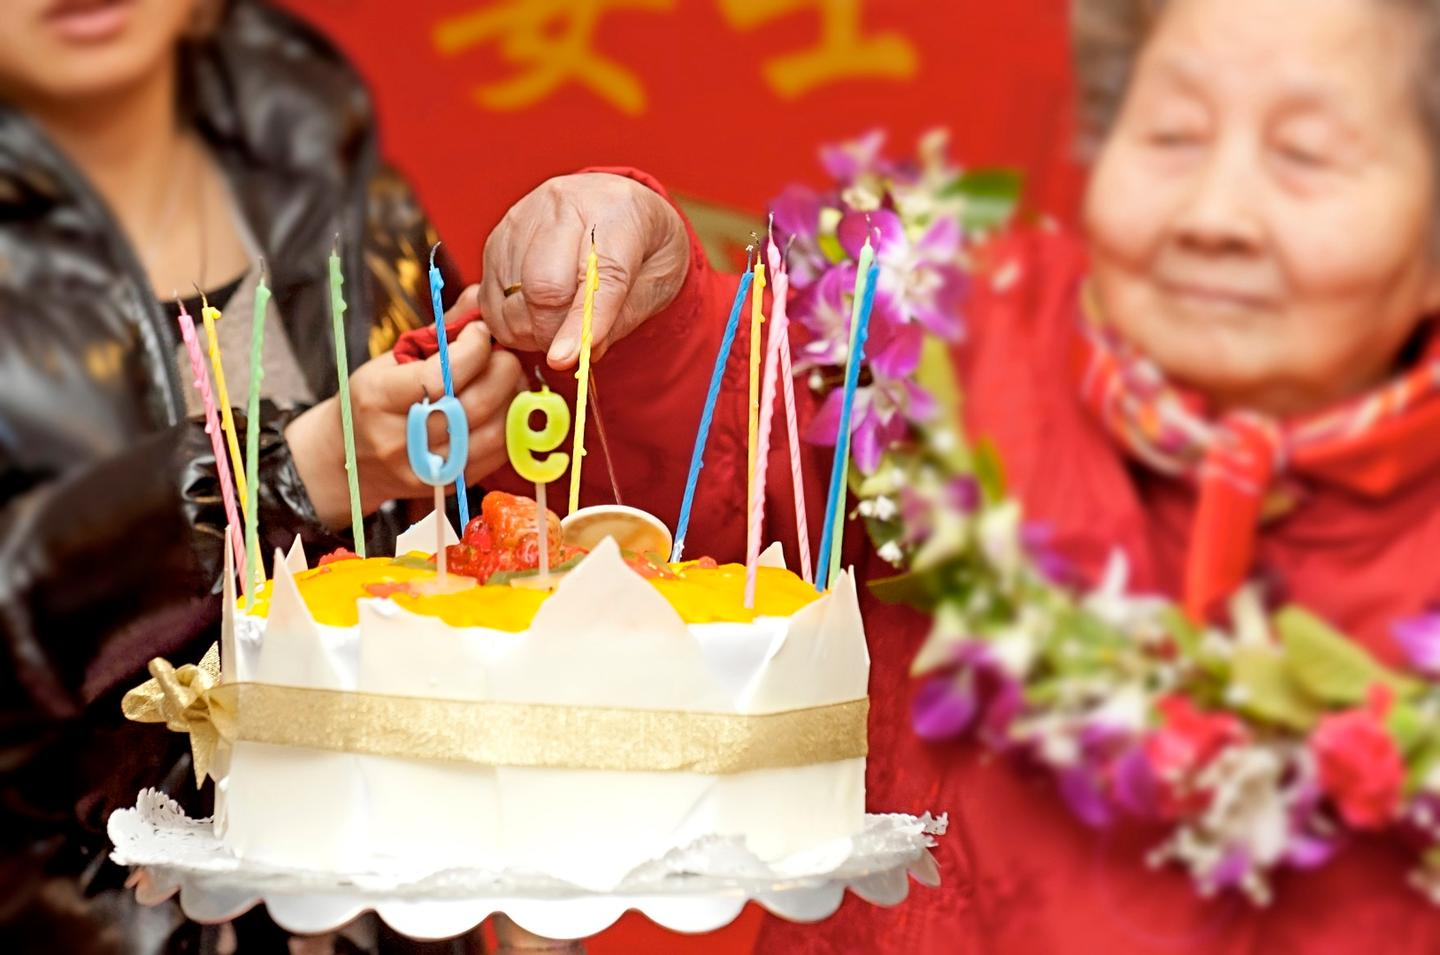 A new study on longevity has found that by 2030, the average life expectancy for women in South Korea willsurpass 90 years